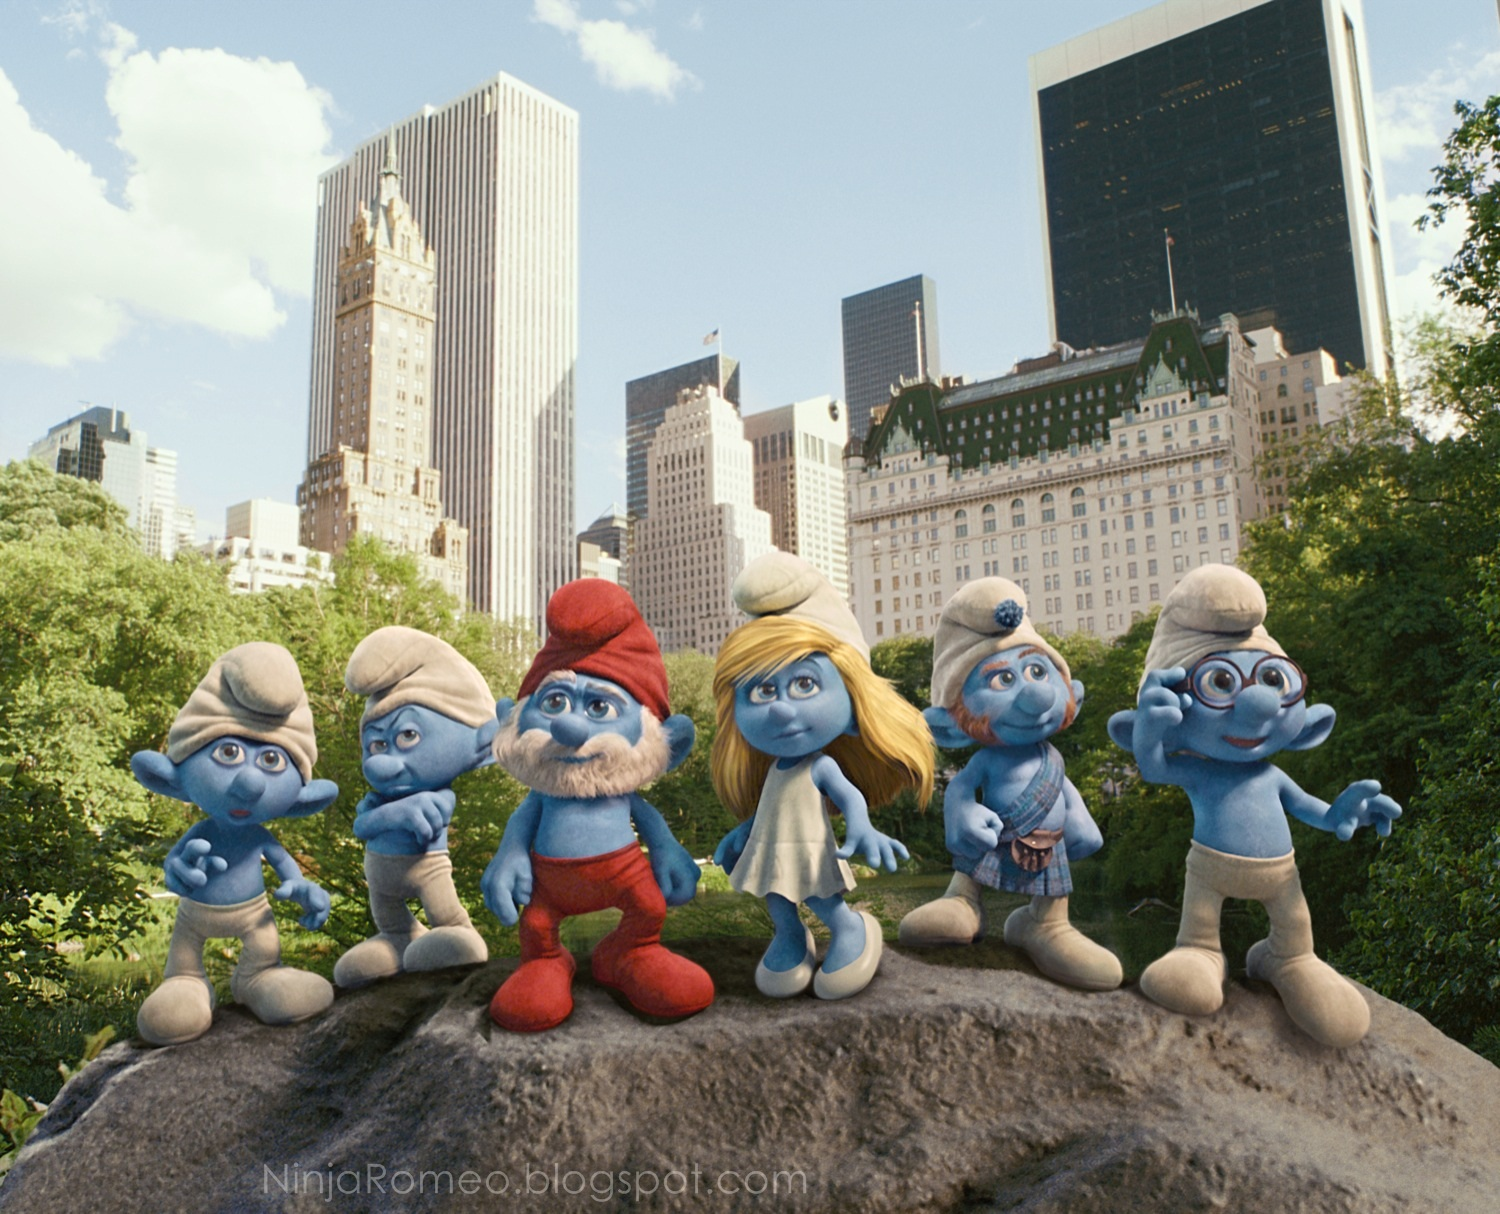 http://1.bp.blogspot.com/-ZnX7i-cV0ks/TjTUbZzlnqI/AAAAAAAAGgY/hyRJIMYlDvM/s1600/the-smurfs-movie-photo-Ninja+Romeo-2.jpg